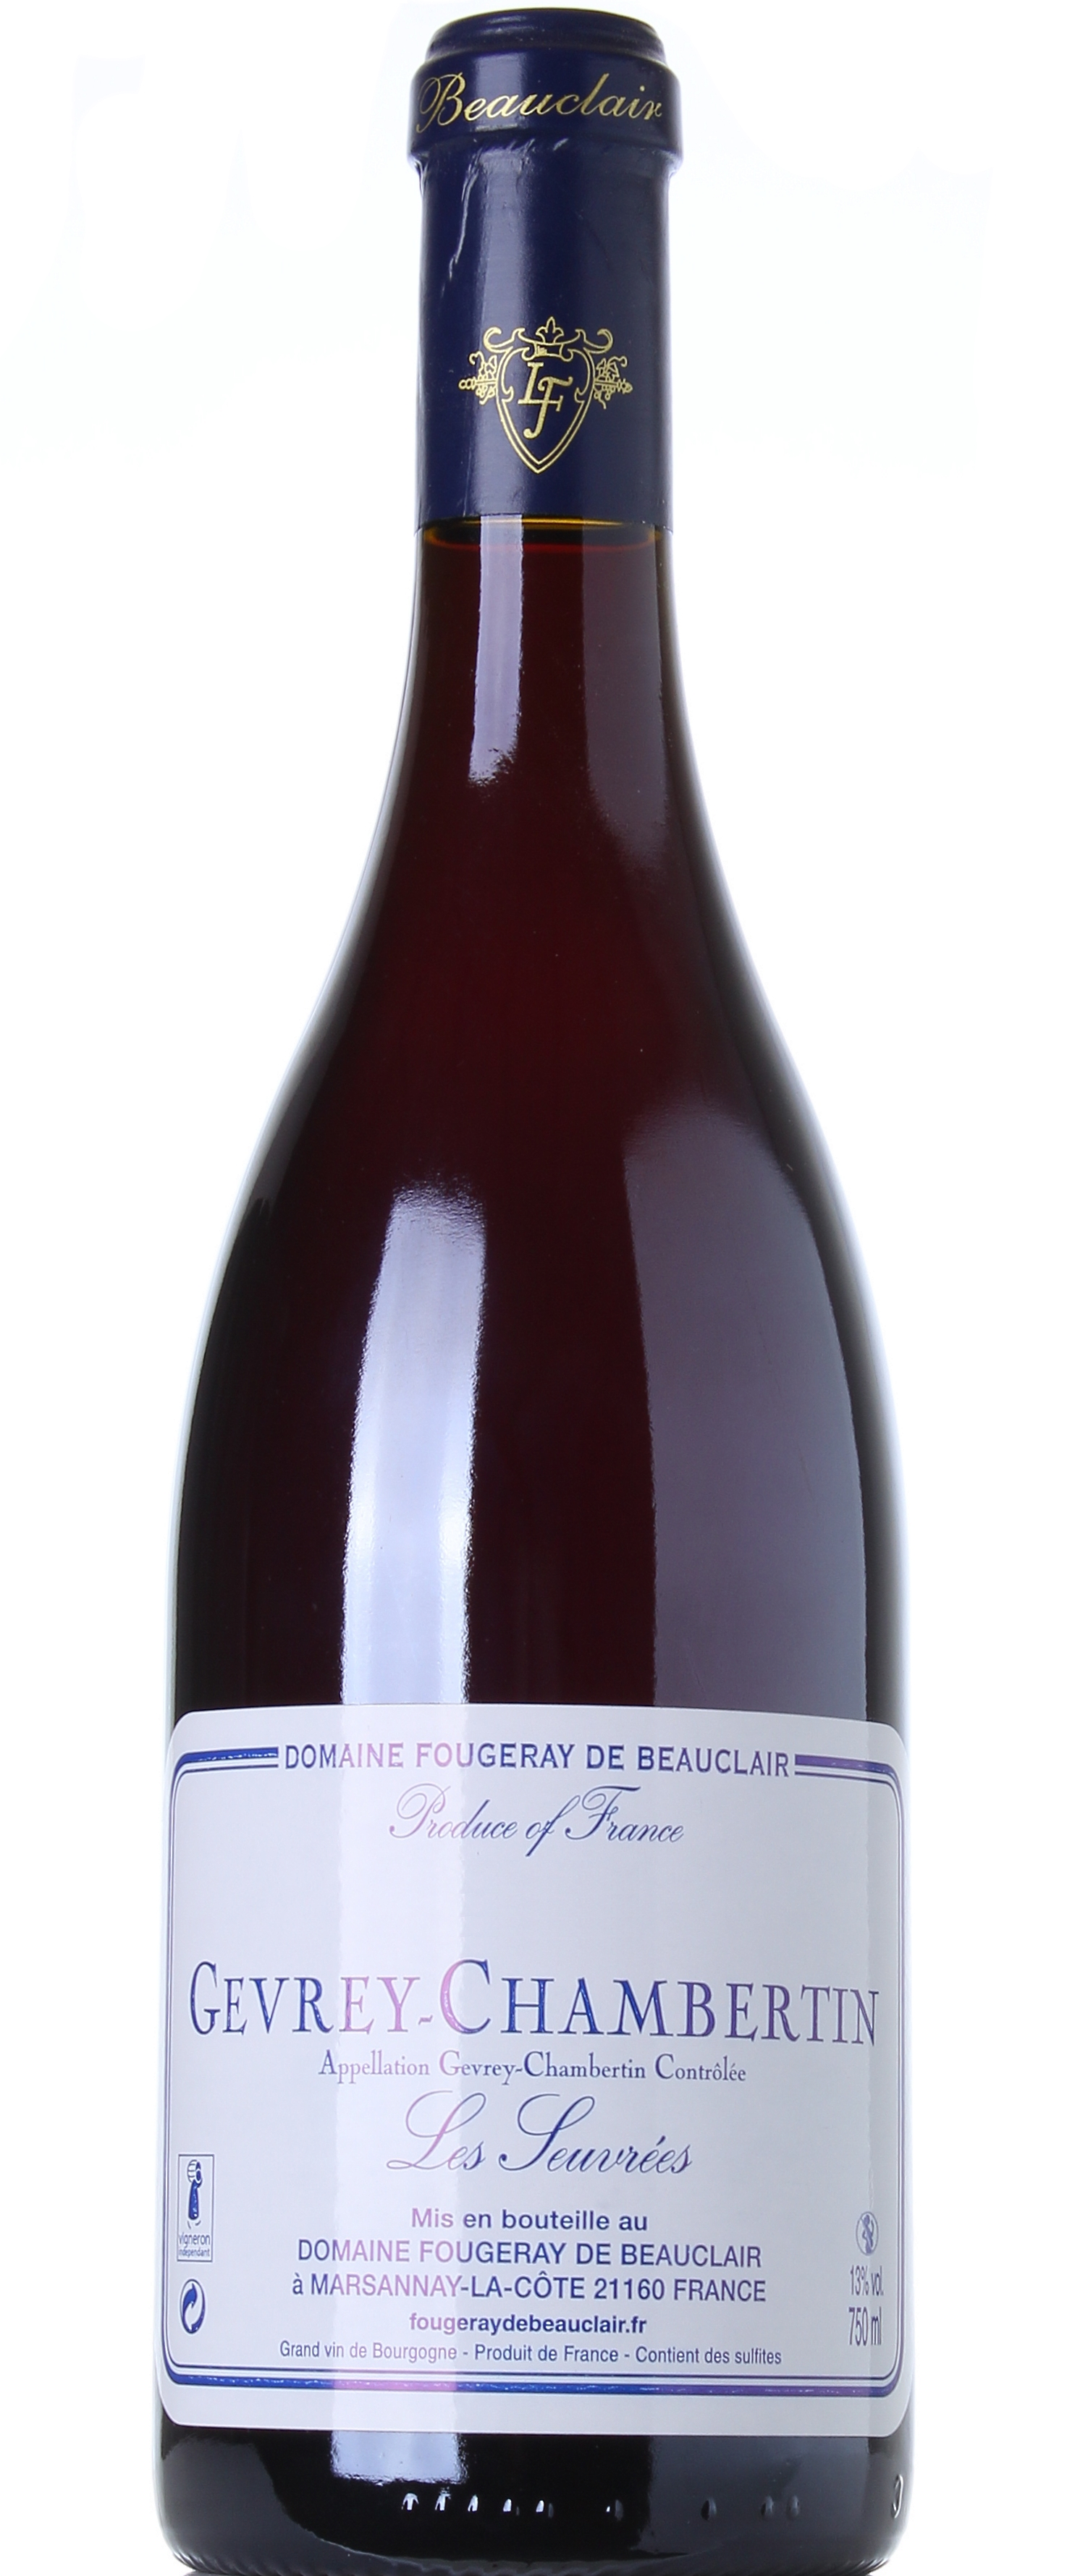 DOMAINE FOUGERAY DE BEAUCLAIR GEVREY CHAMBERTIN LES SEUVREES 2008